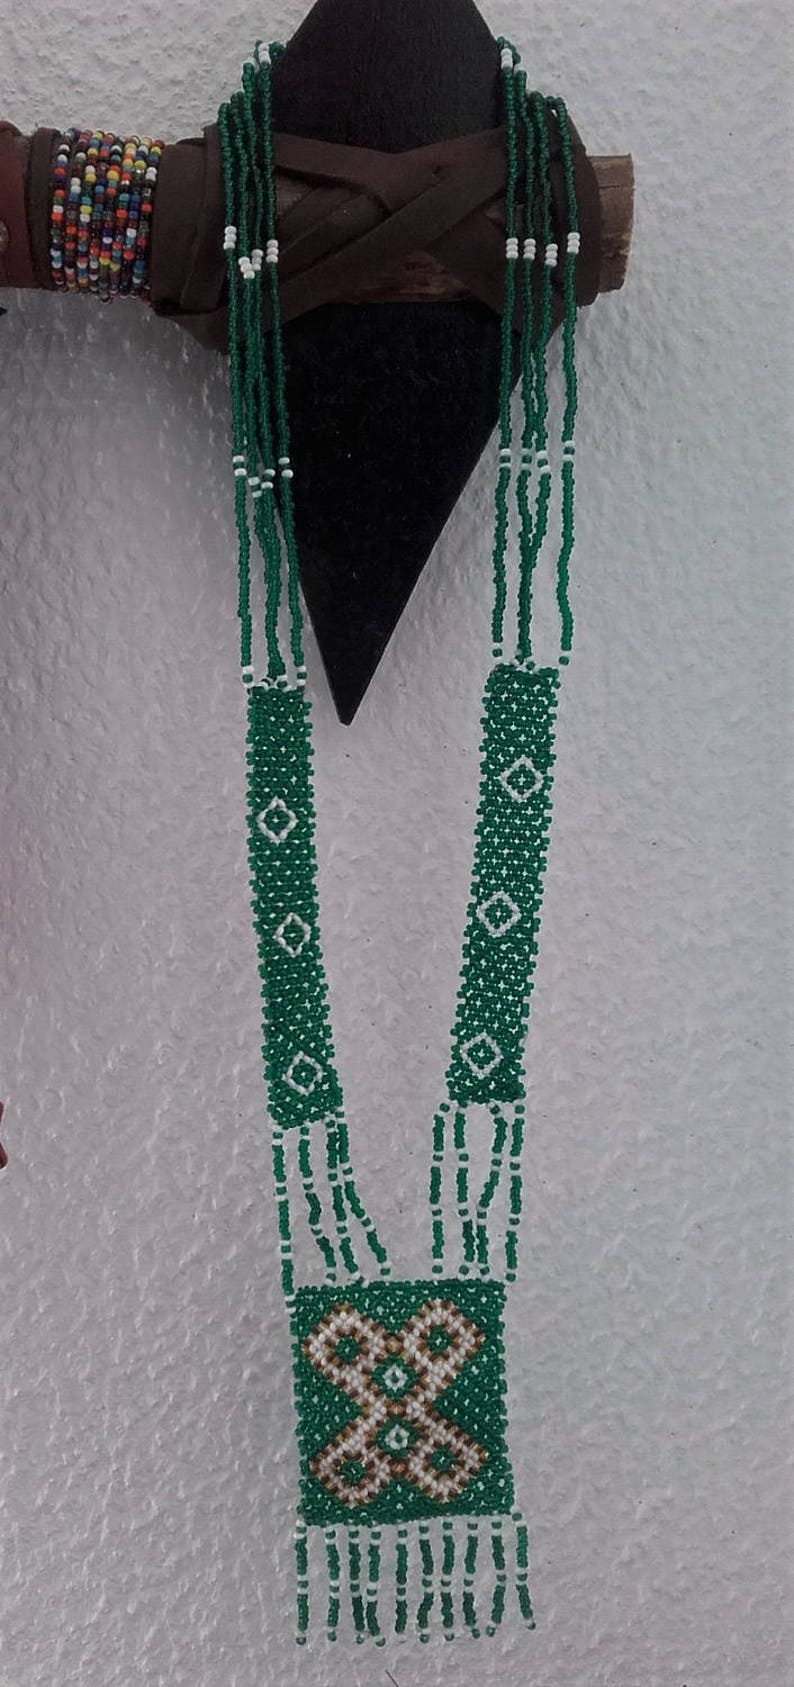 necklace in glass beads